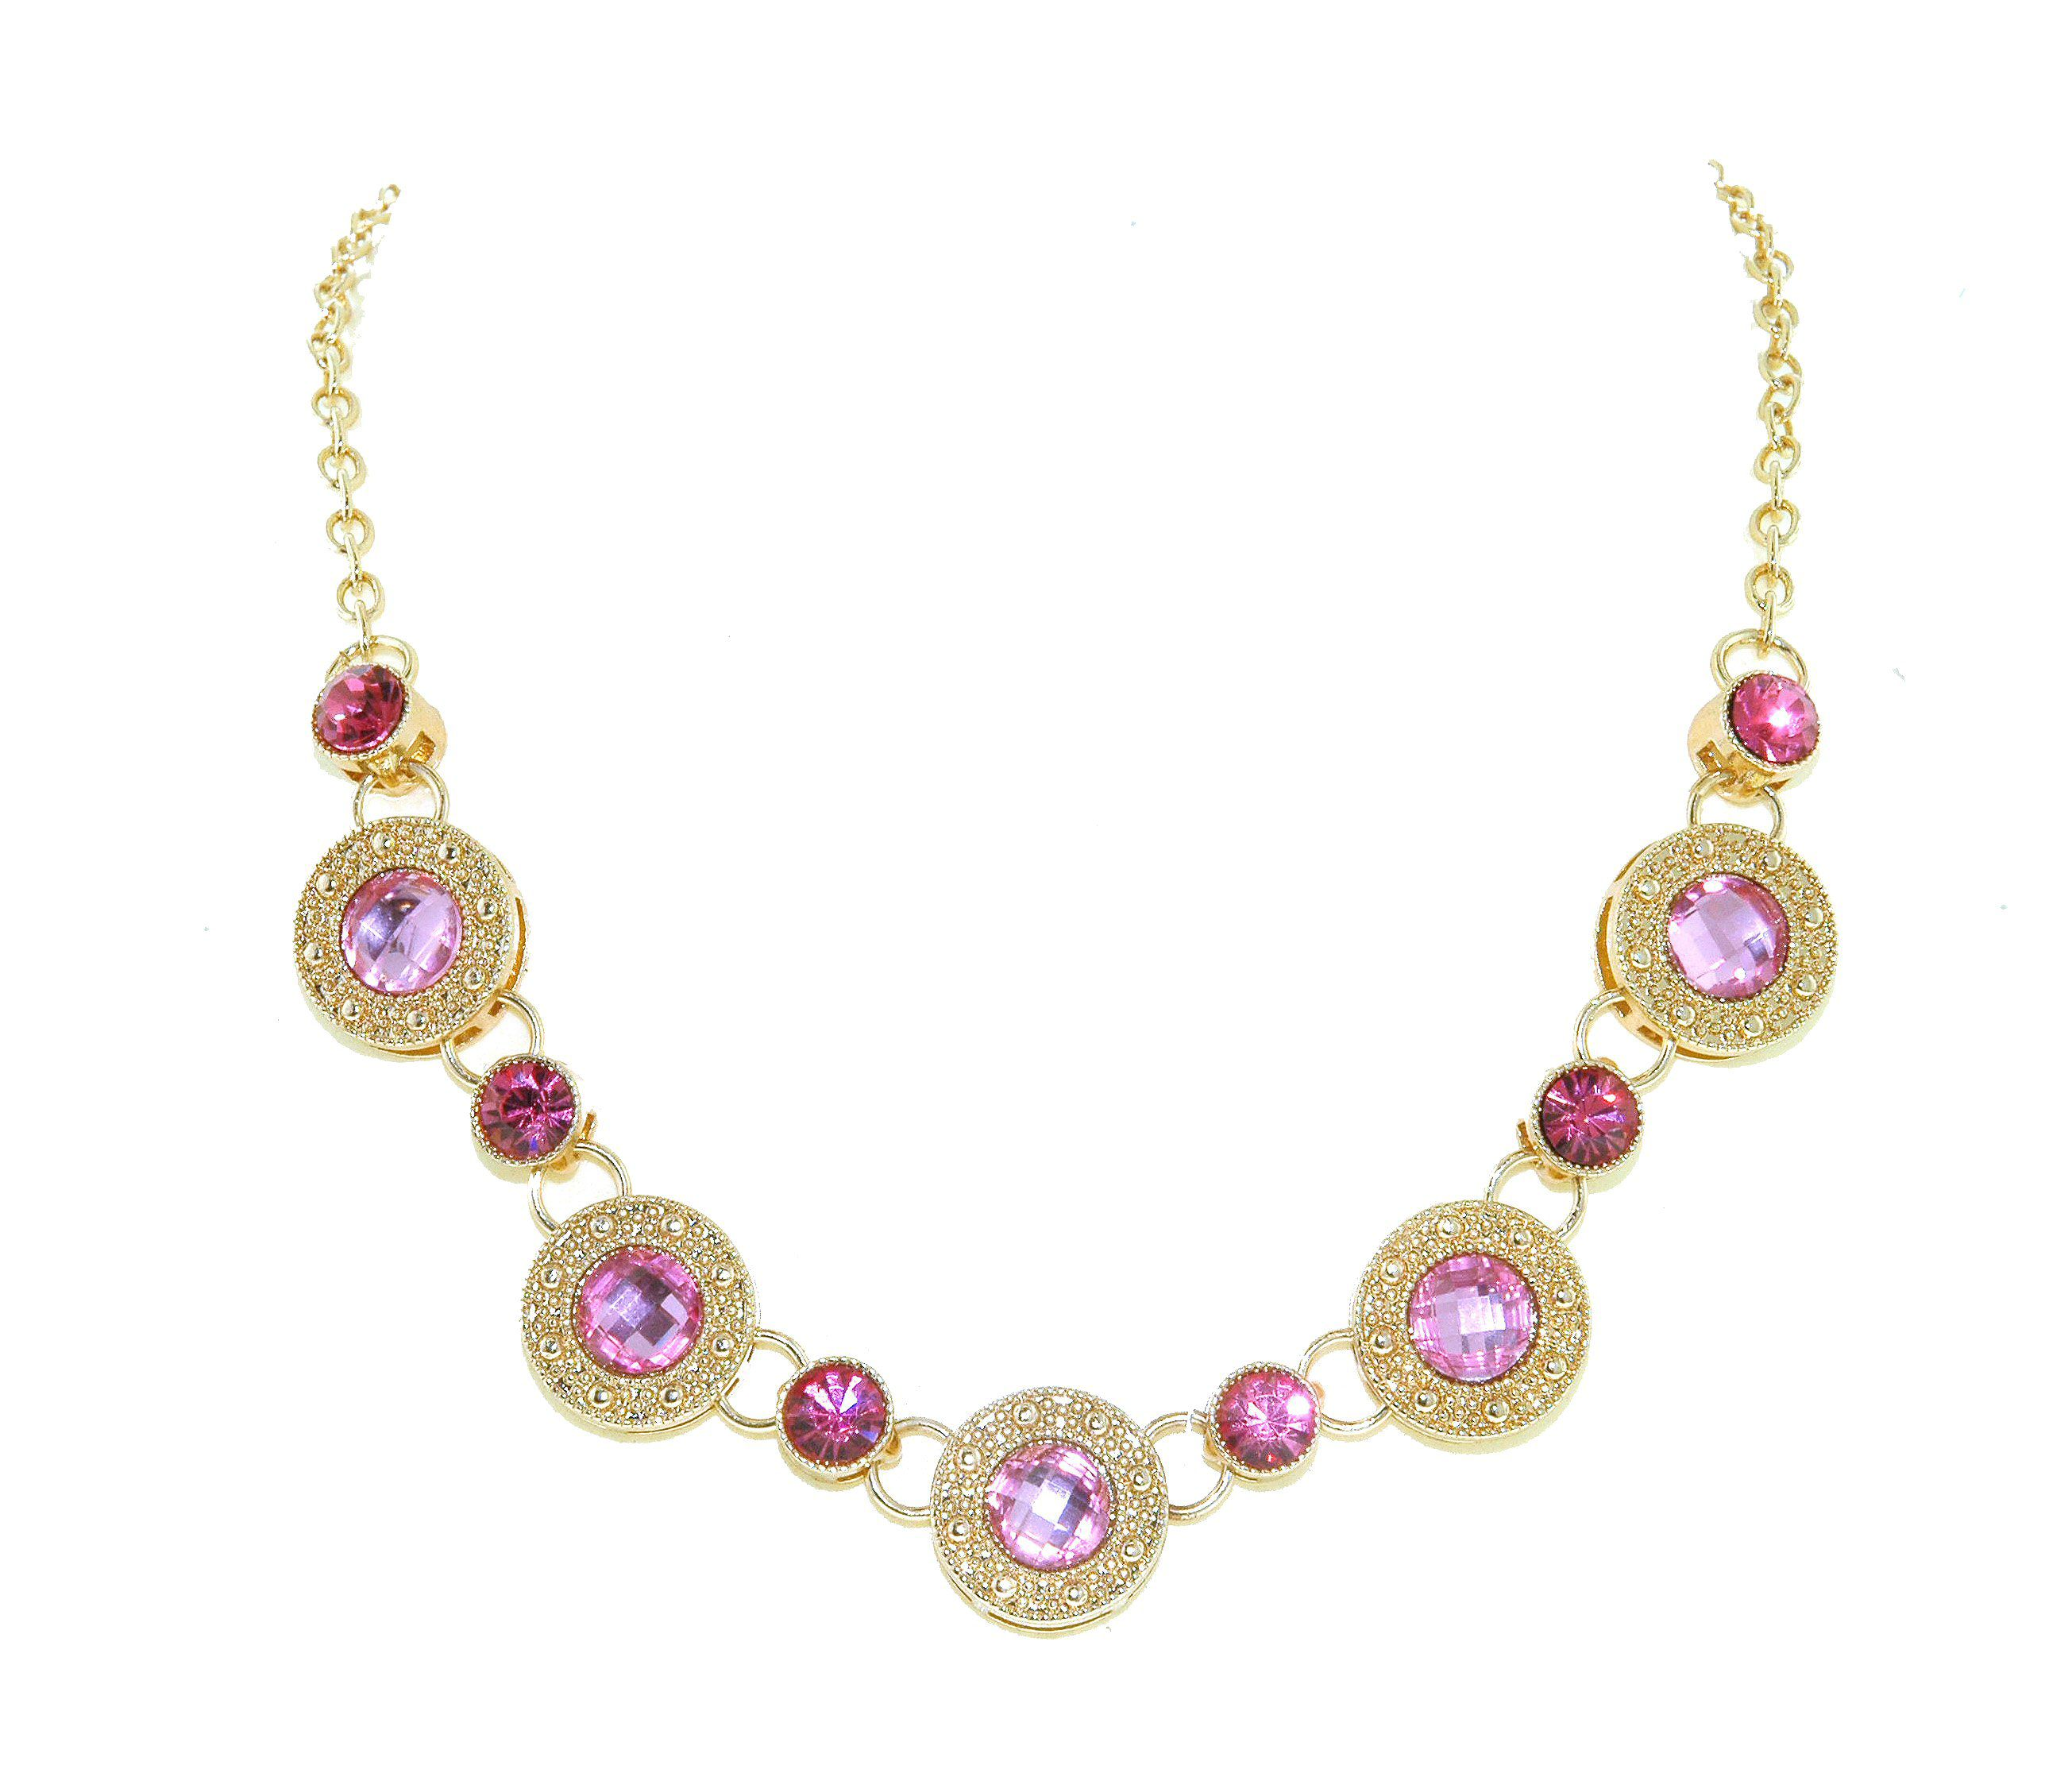 Gold & pink crystal disc necklace